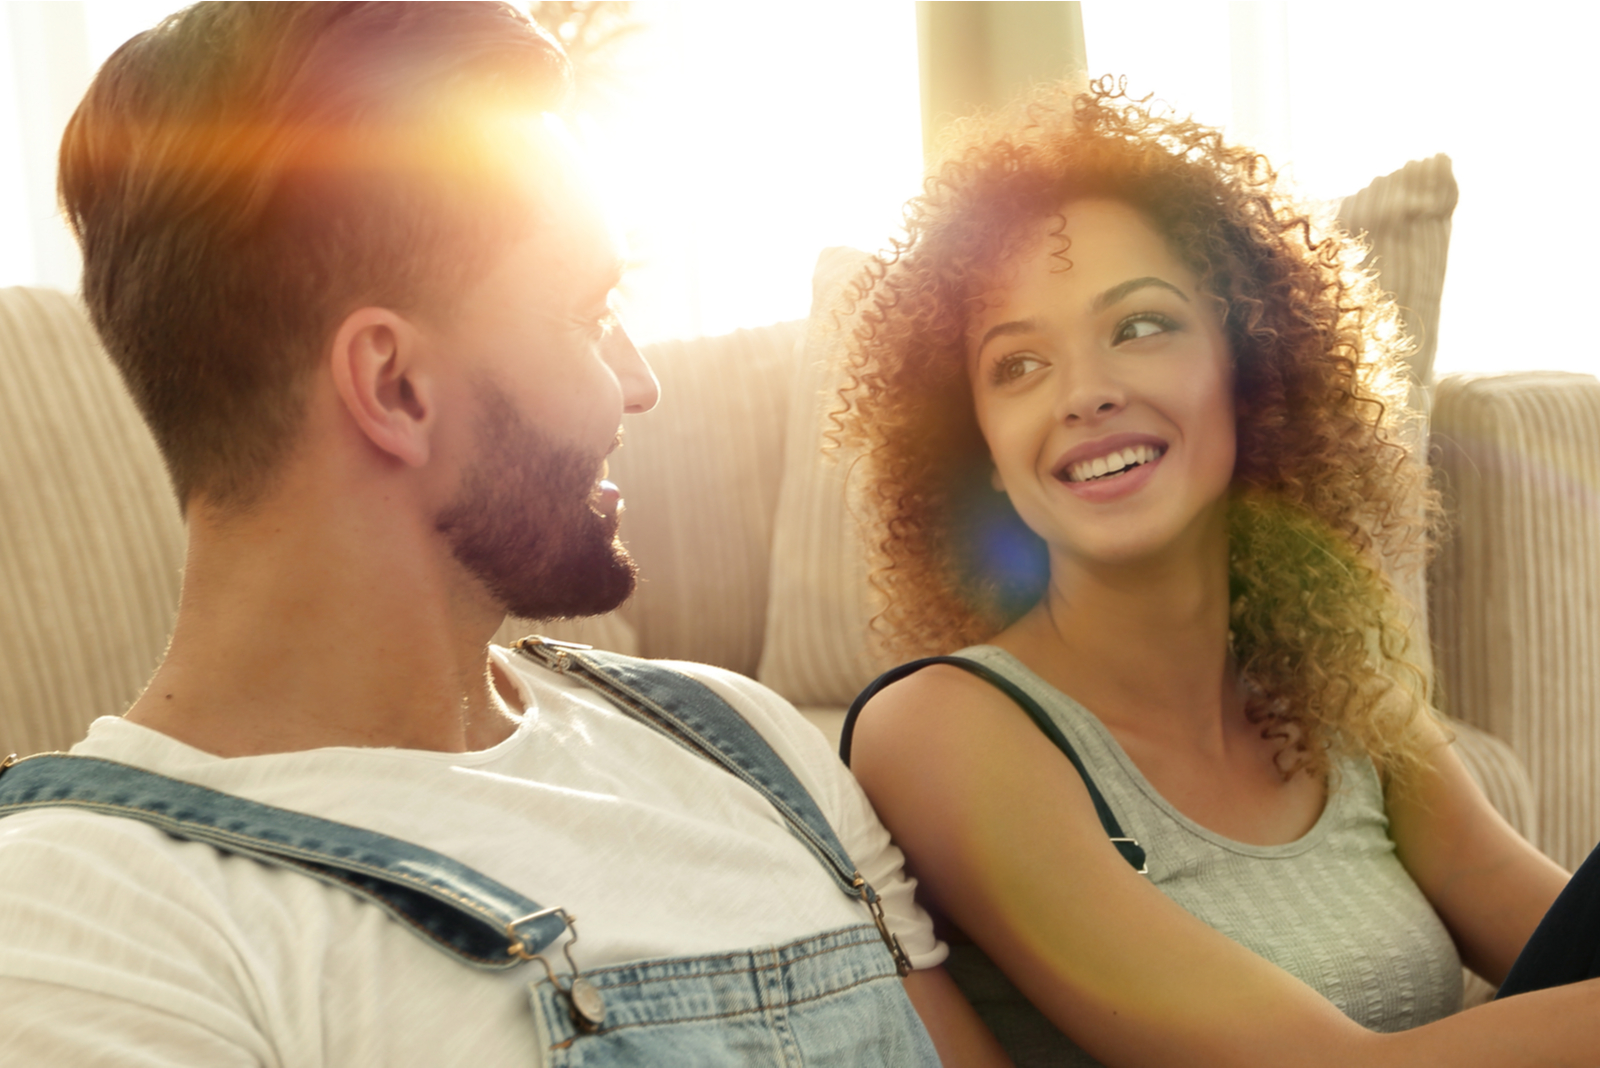 a woman with frizzy hair talking to a man